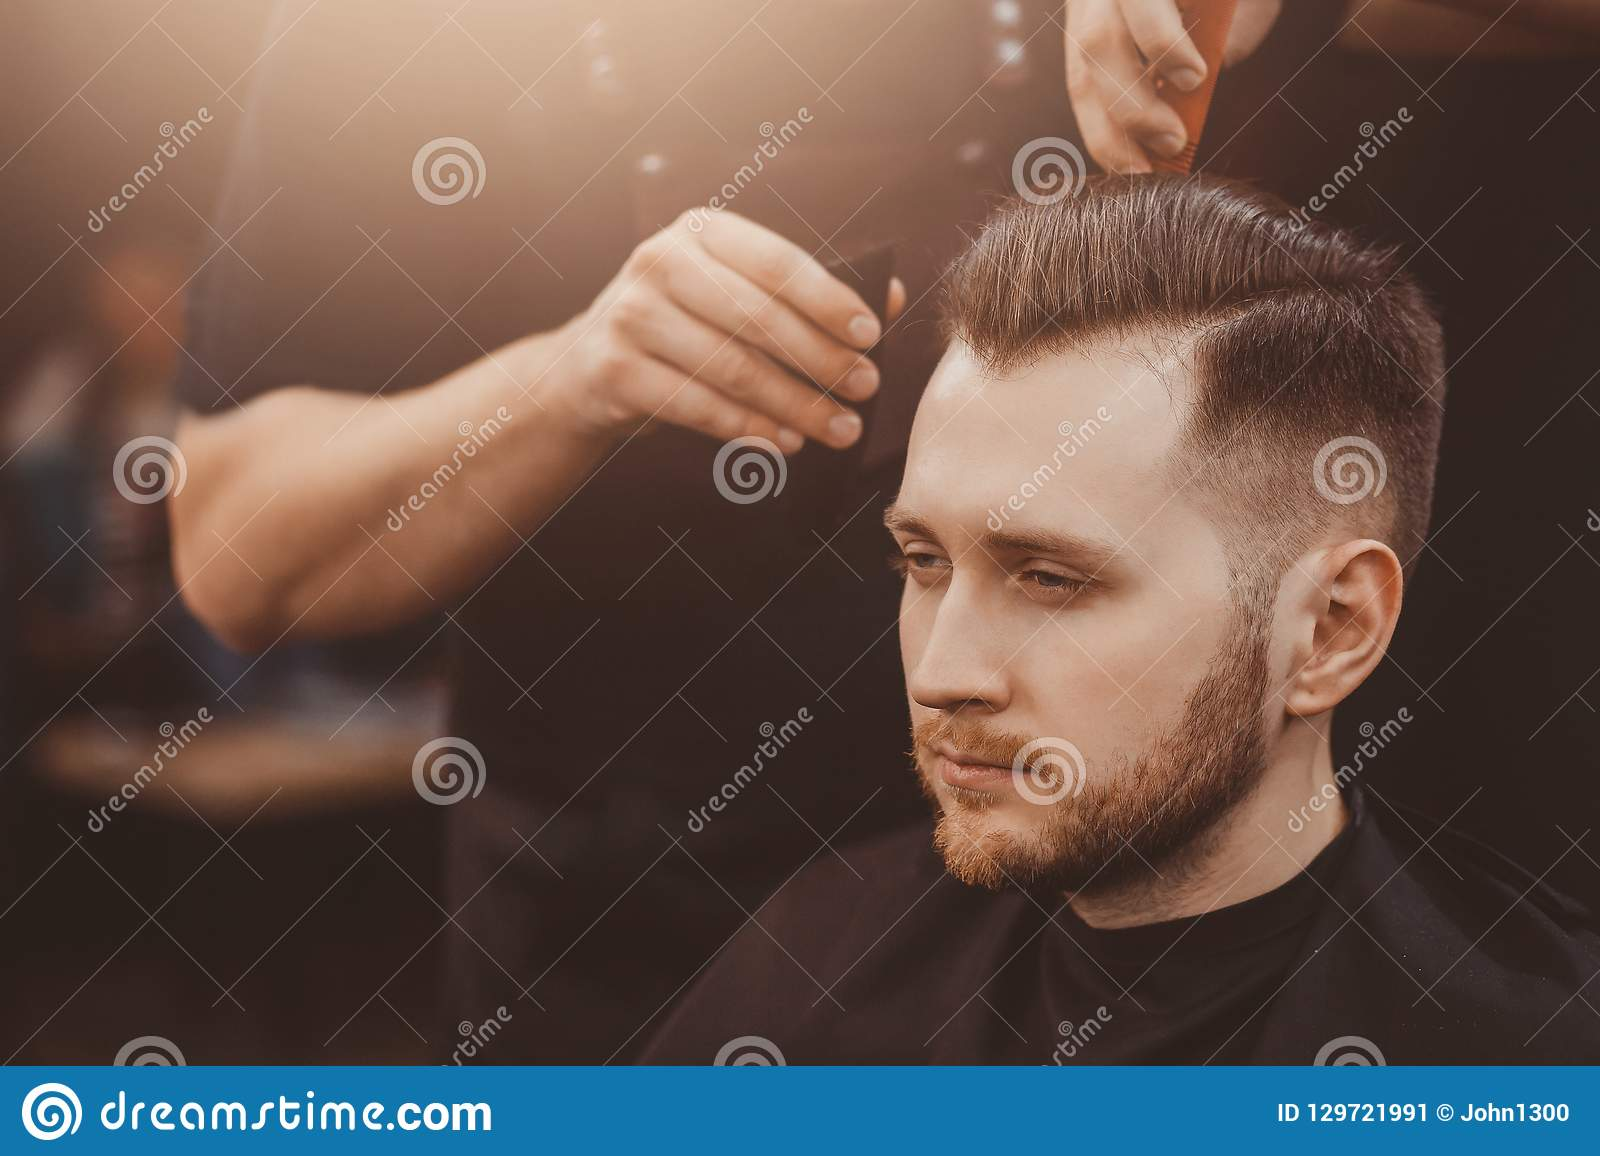 Man With Beard In Barber Shop Stock Image - Image of chin, clippers